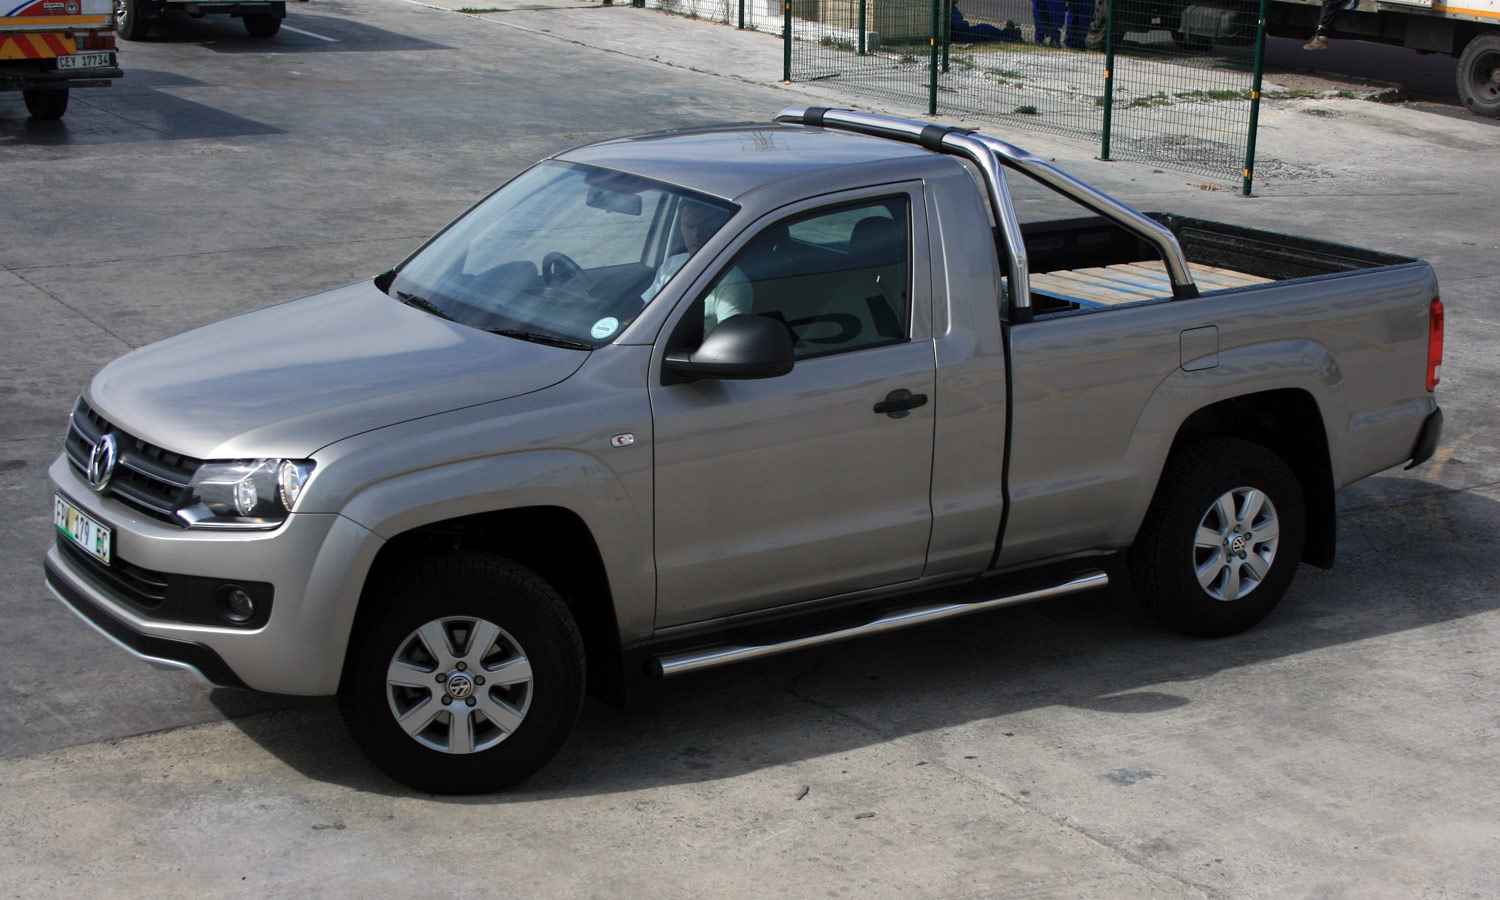 vw amarok 2.0 bitdi 4motion 120kw trendline single cab review